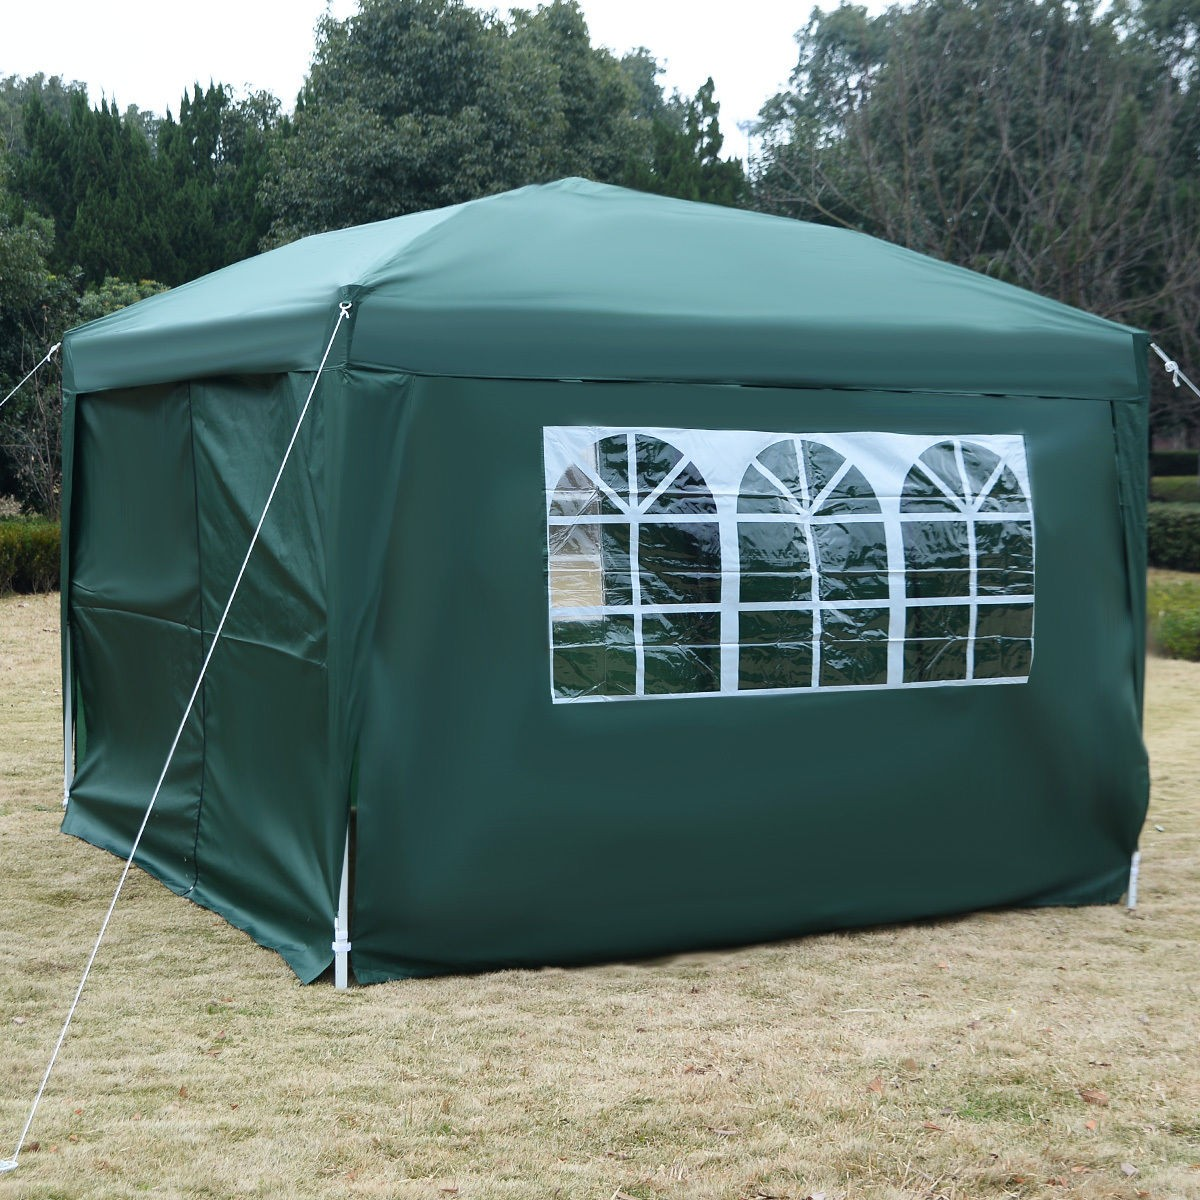 & 10 x 10 EZ Pop Up Tent Canopy Gazebo